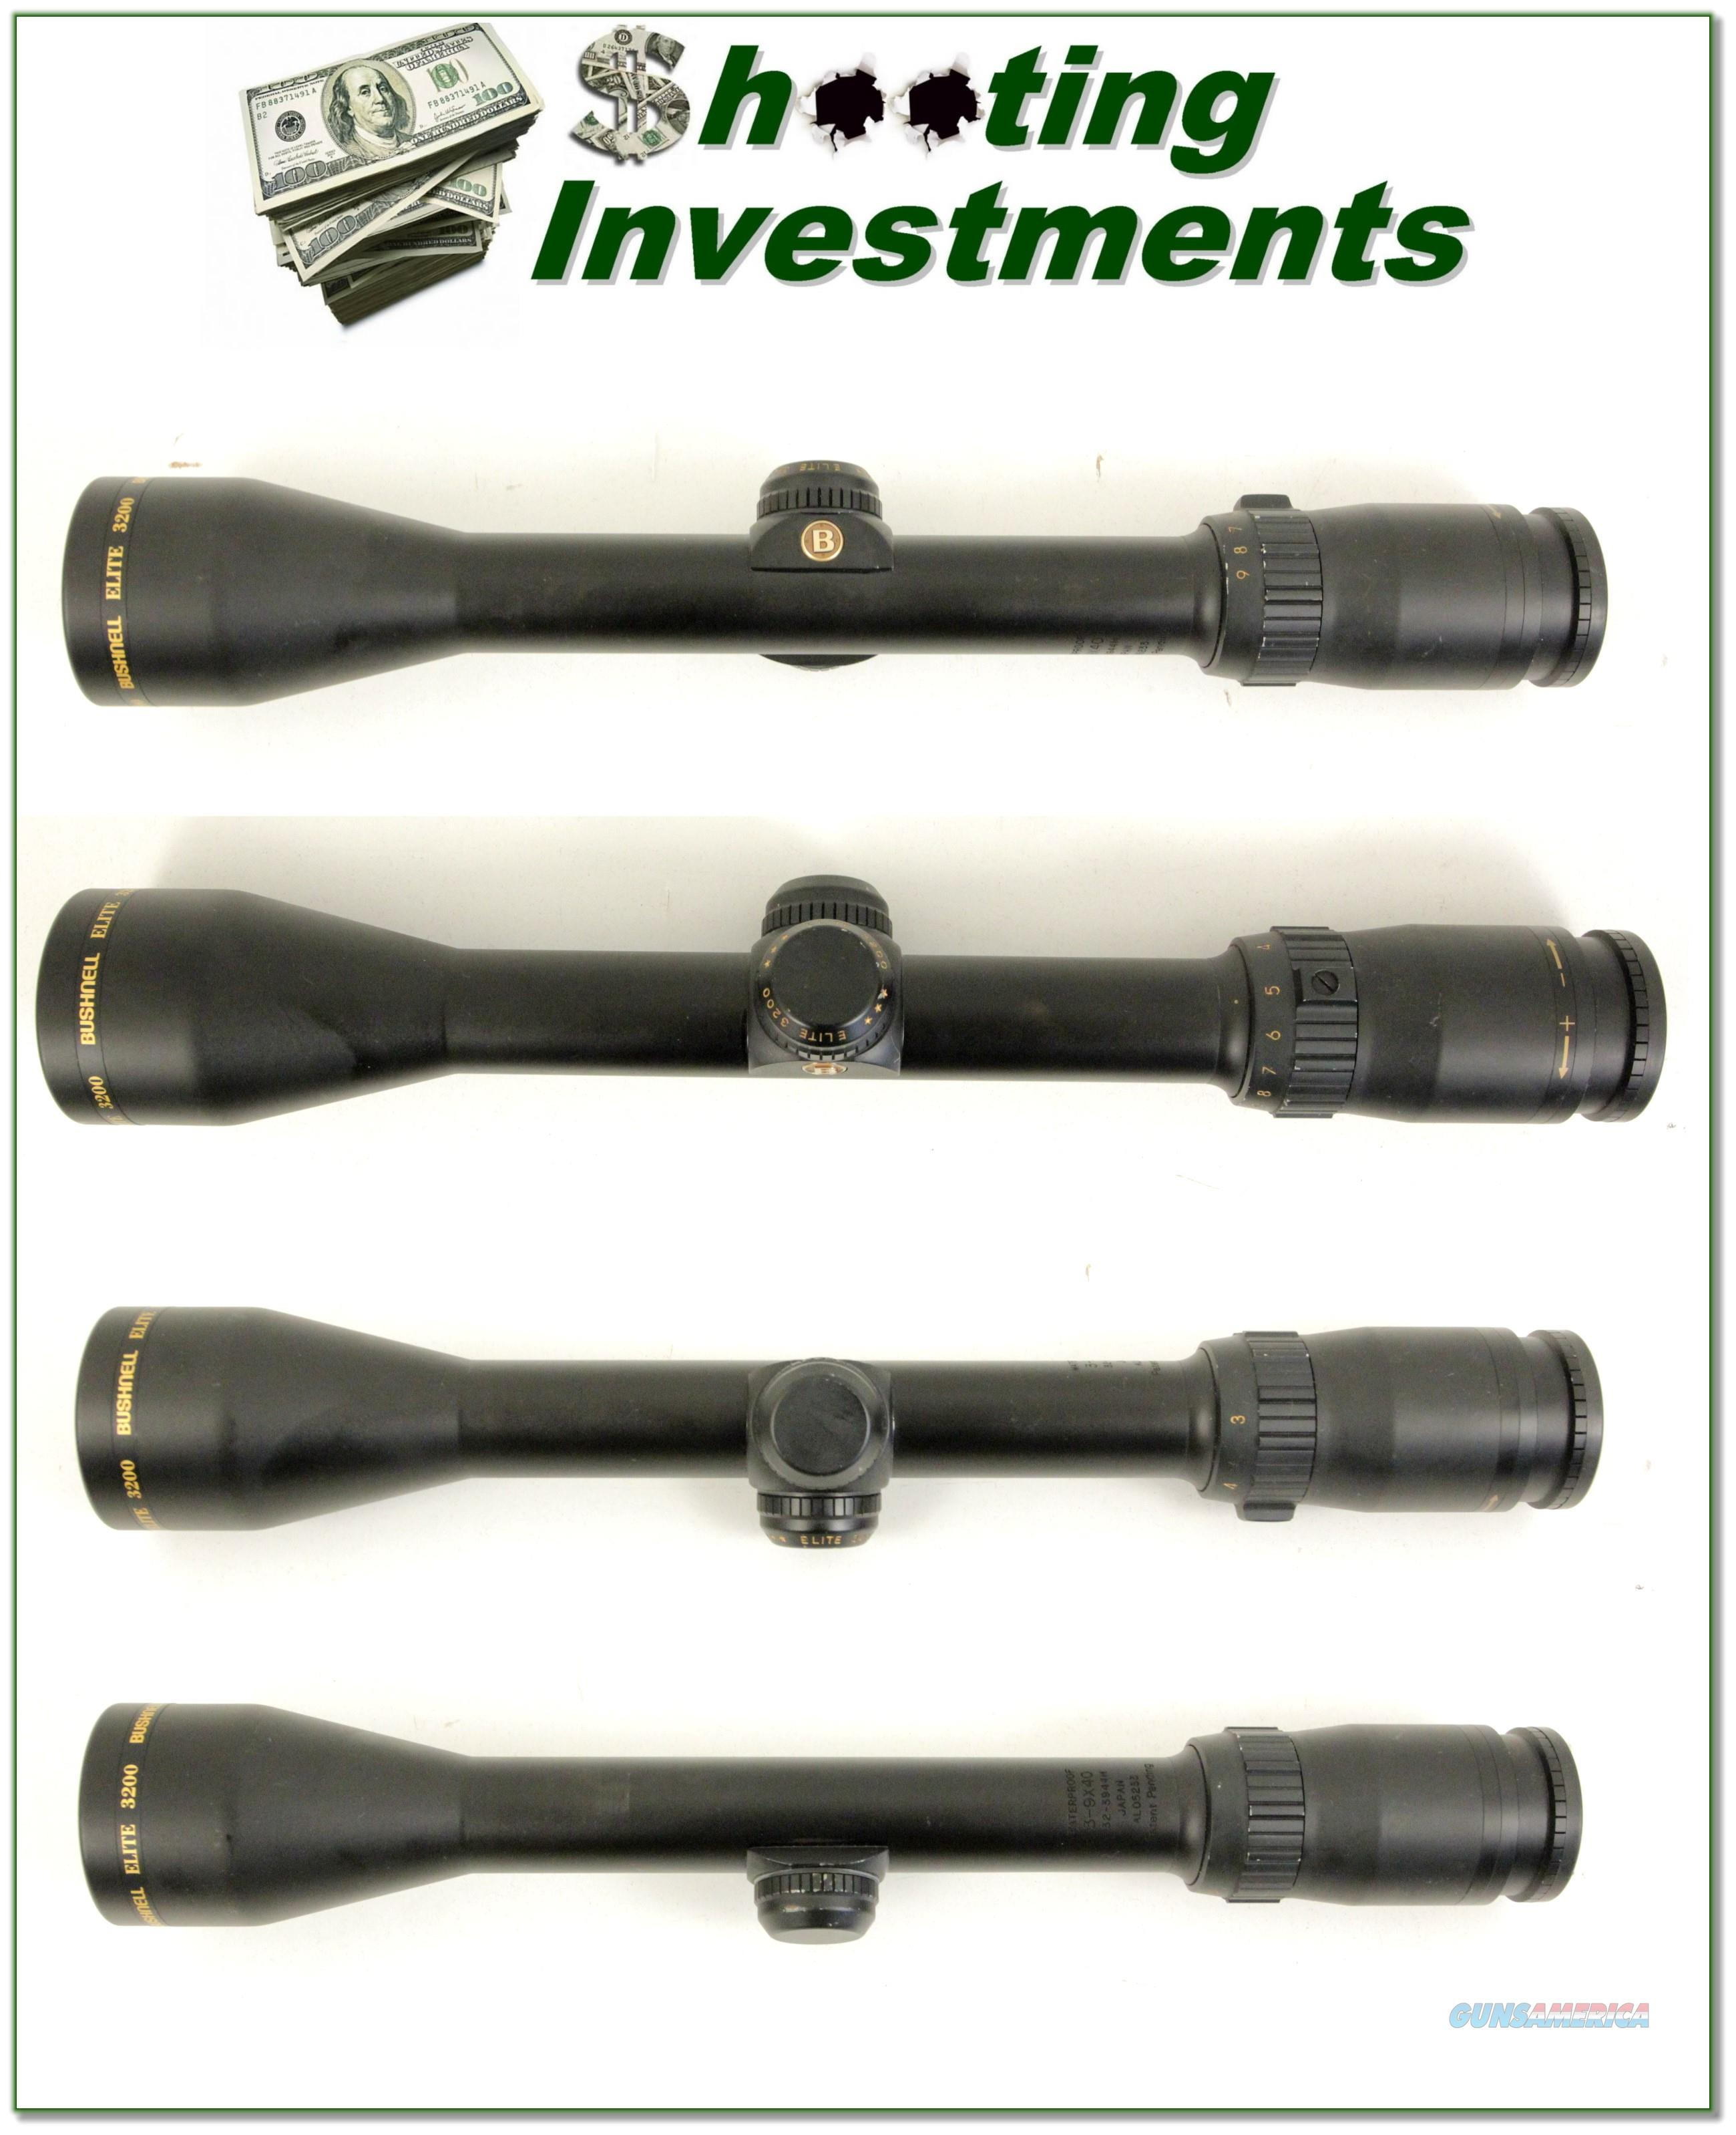 Bushnell Elite 3200 3-9 X 40 rifle scope Matt Exc Cond!  Non-Guns > Scopes/Mounts/Rings & Optics > Rifle Scopes > Variable Focal Length